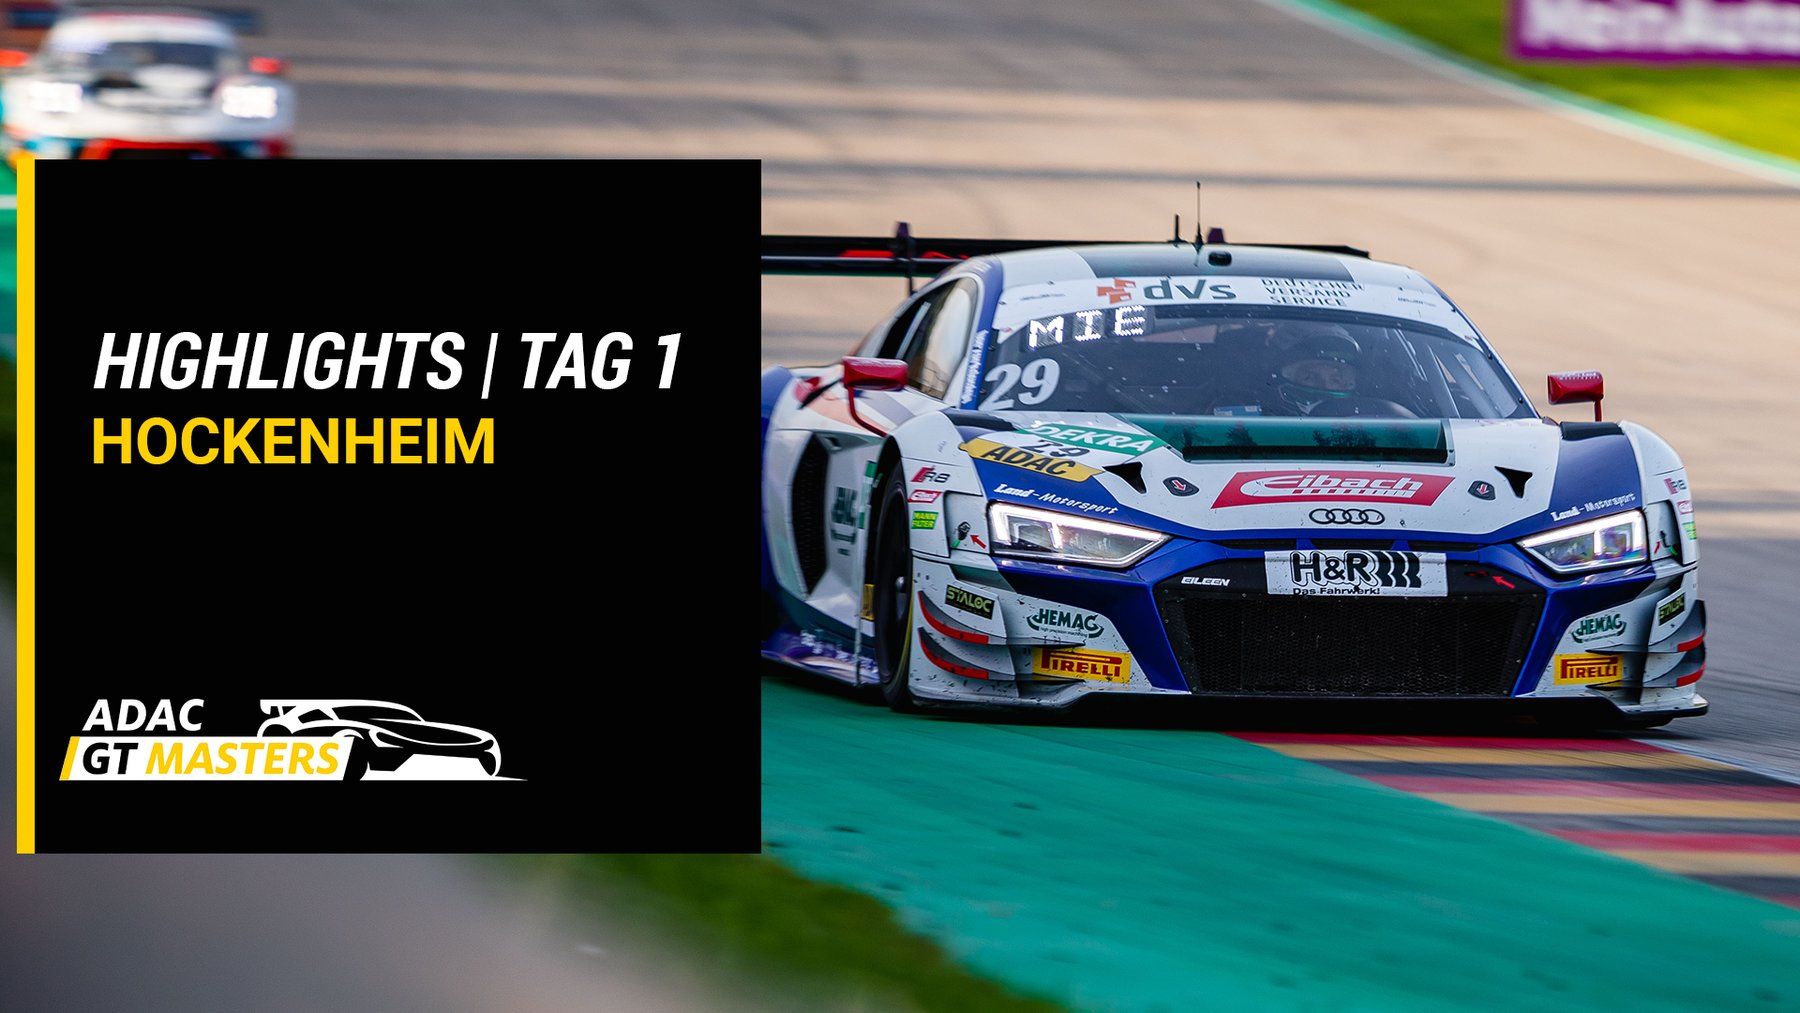 GT Masters Highlights - Tag 1